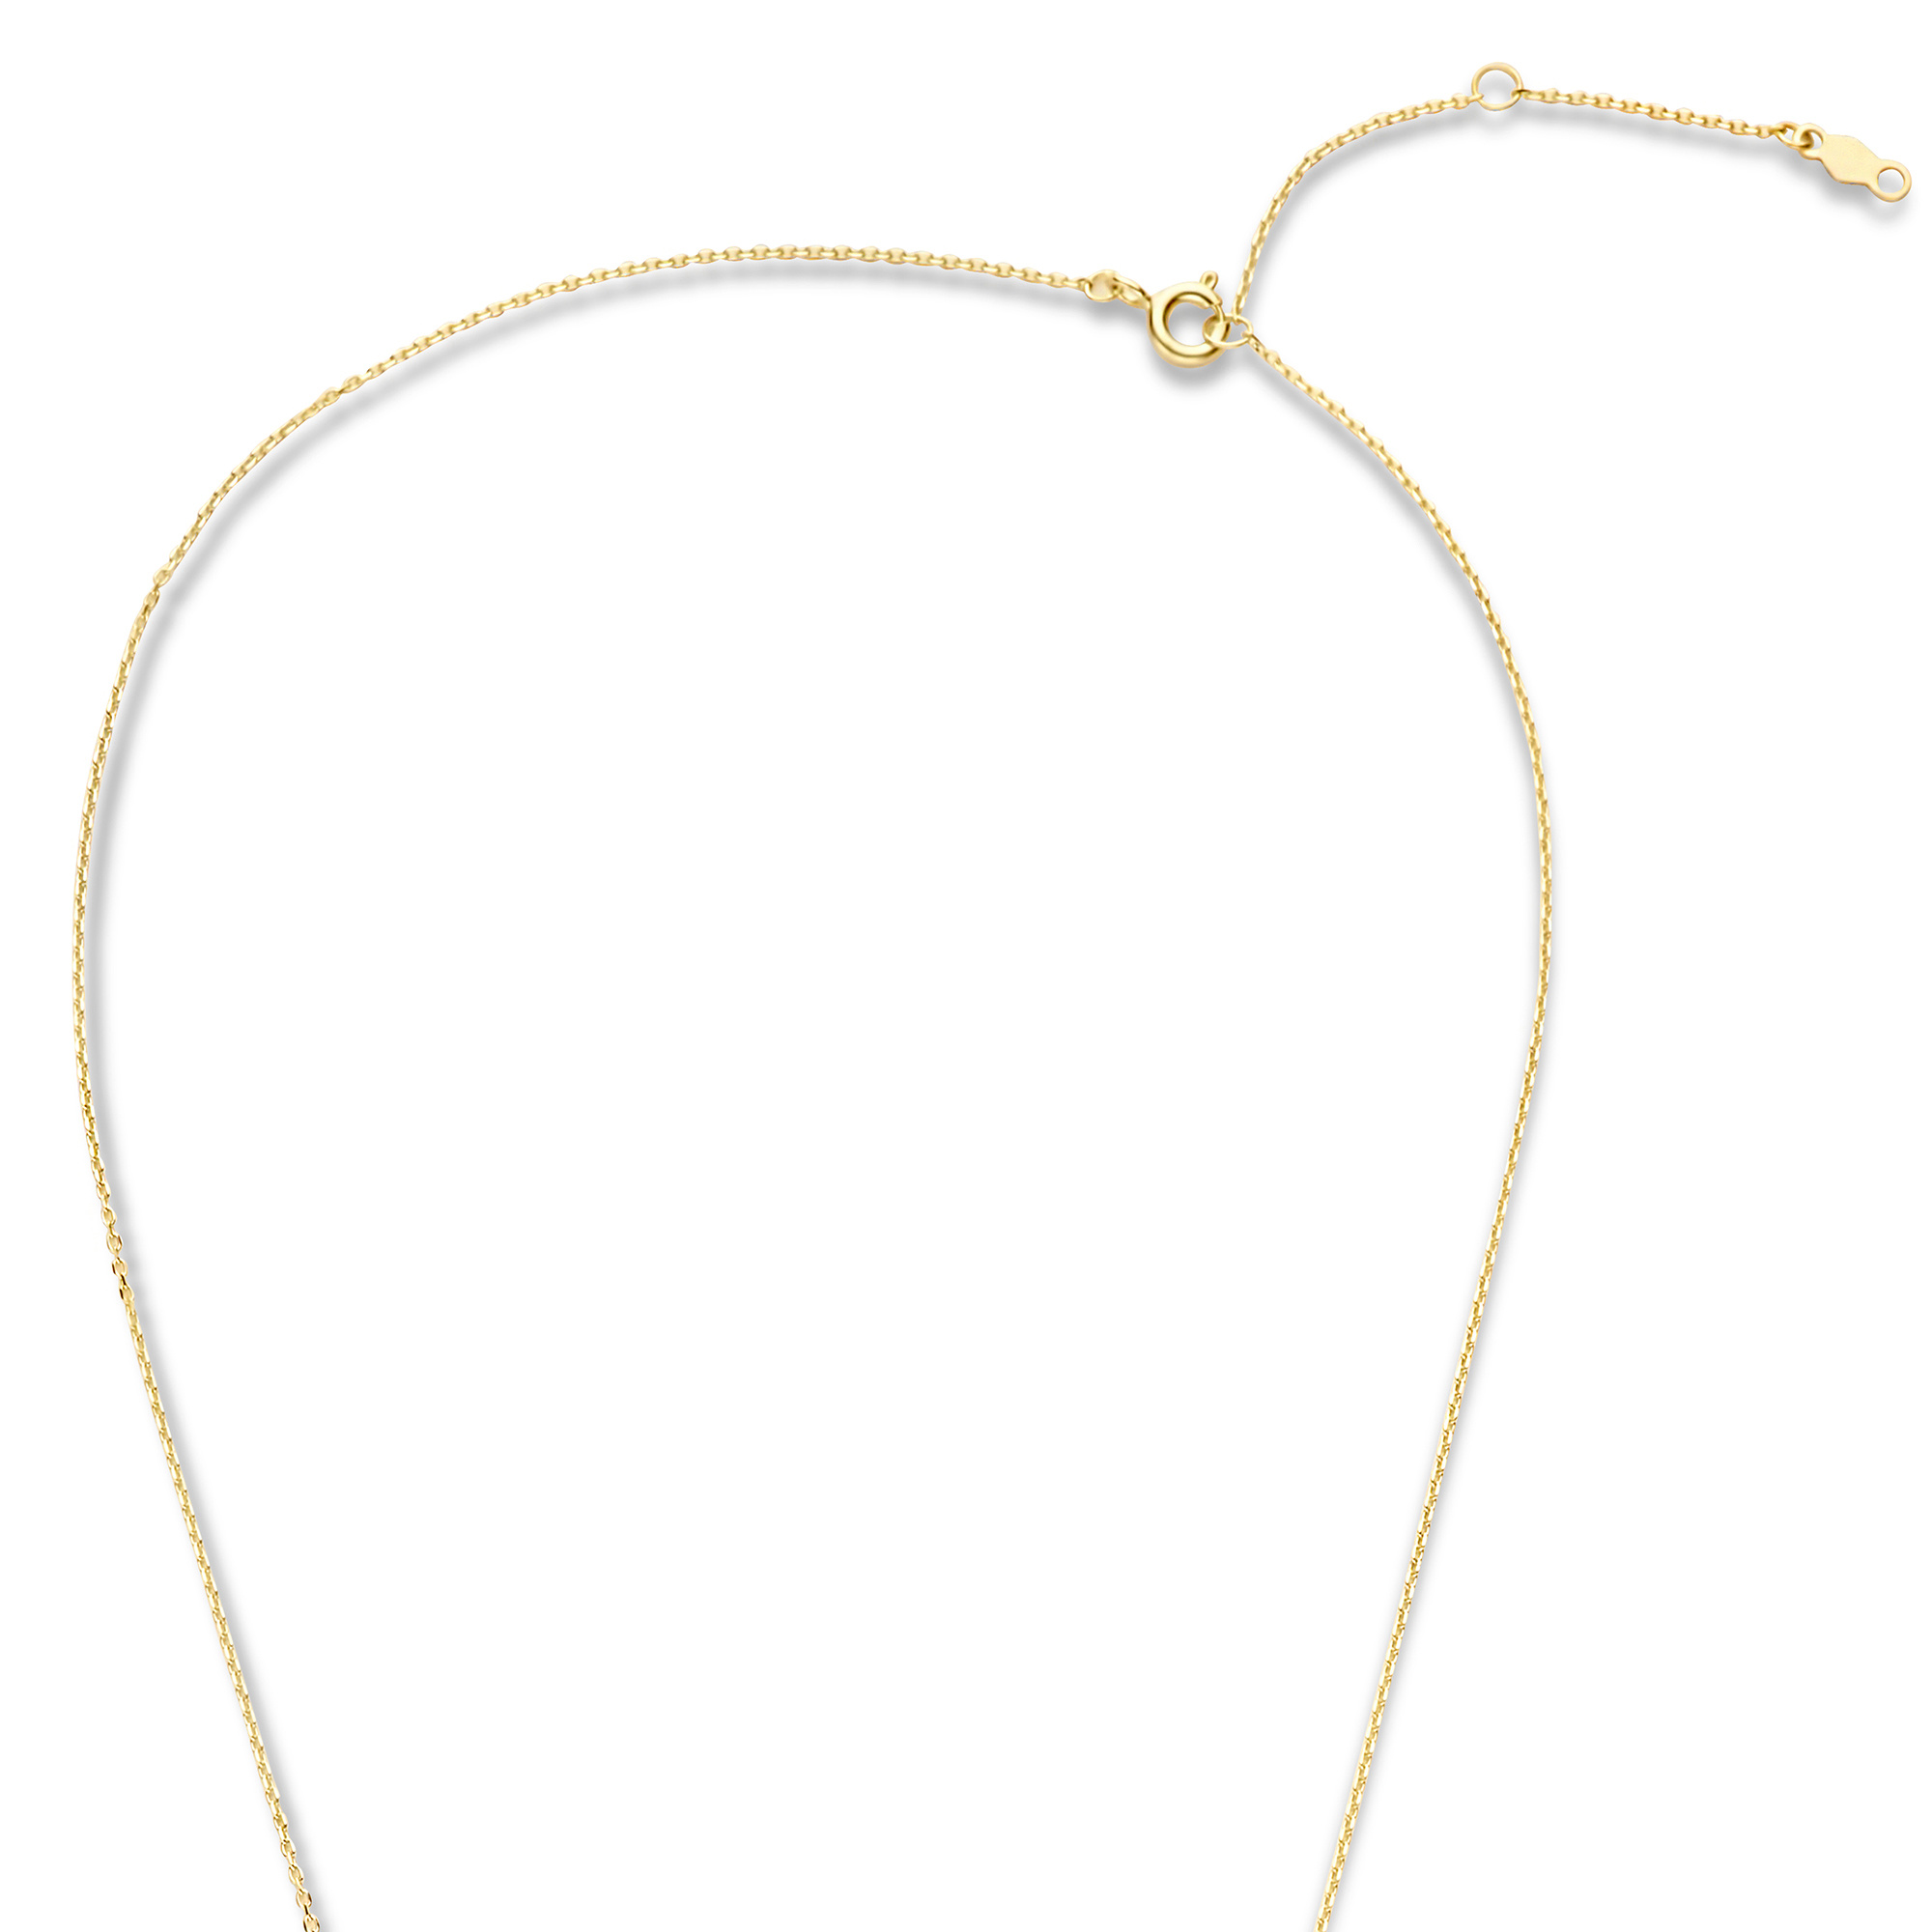 Violet Hamden Venus 925 sterling silver gold colored necklace with birthstone